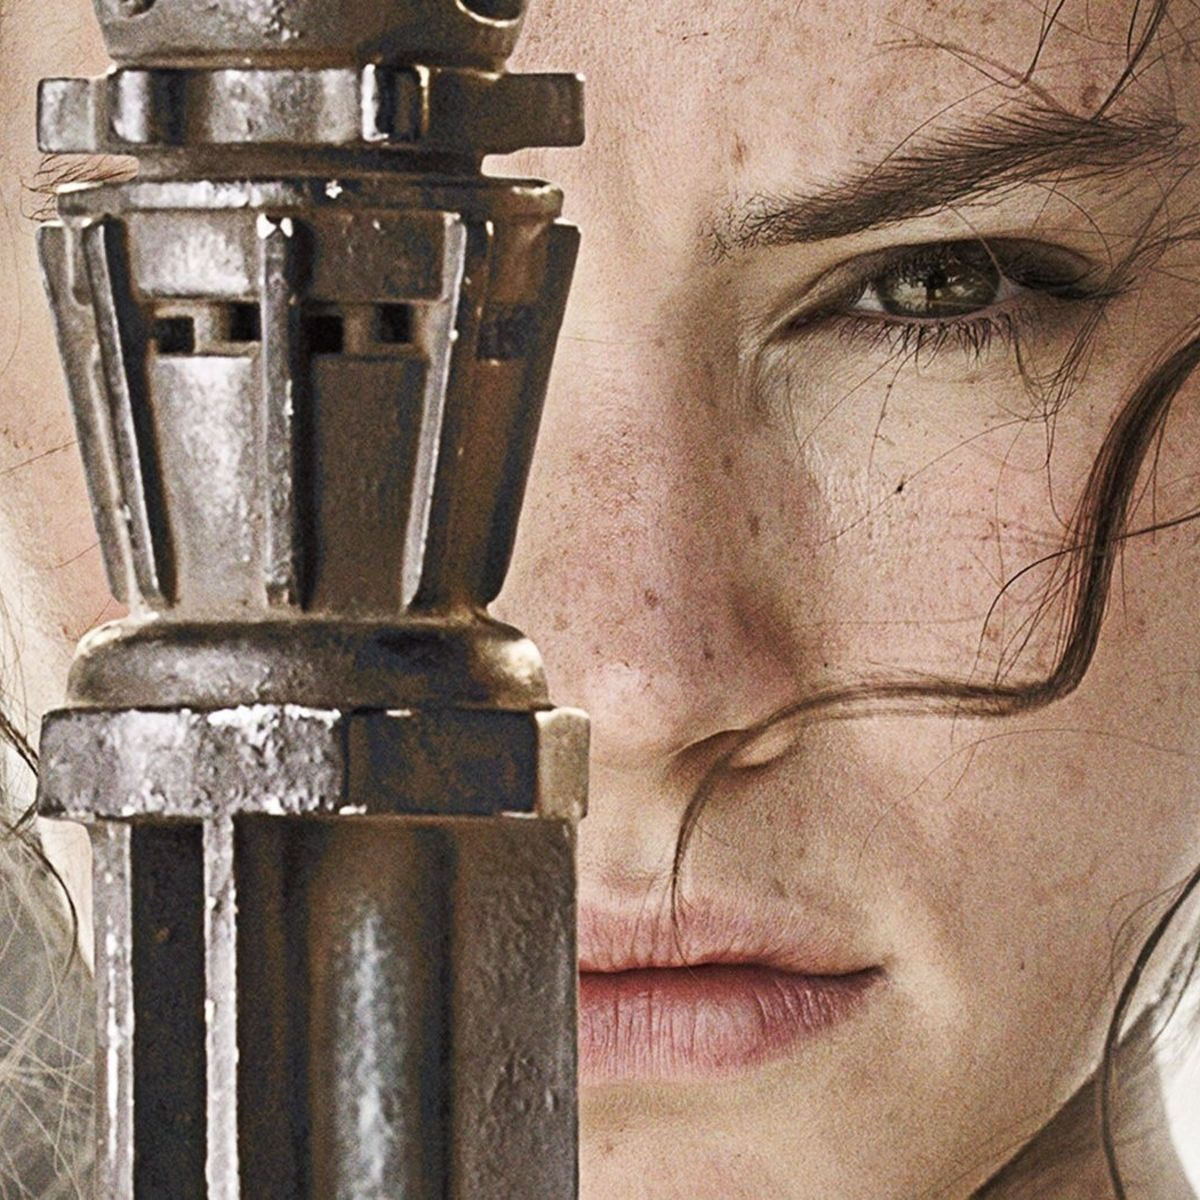 Daisy-Ridley-Rey-Star-Wars-The-Force-Wallpaper-1680x1050.jpg